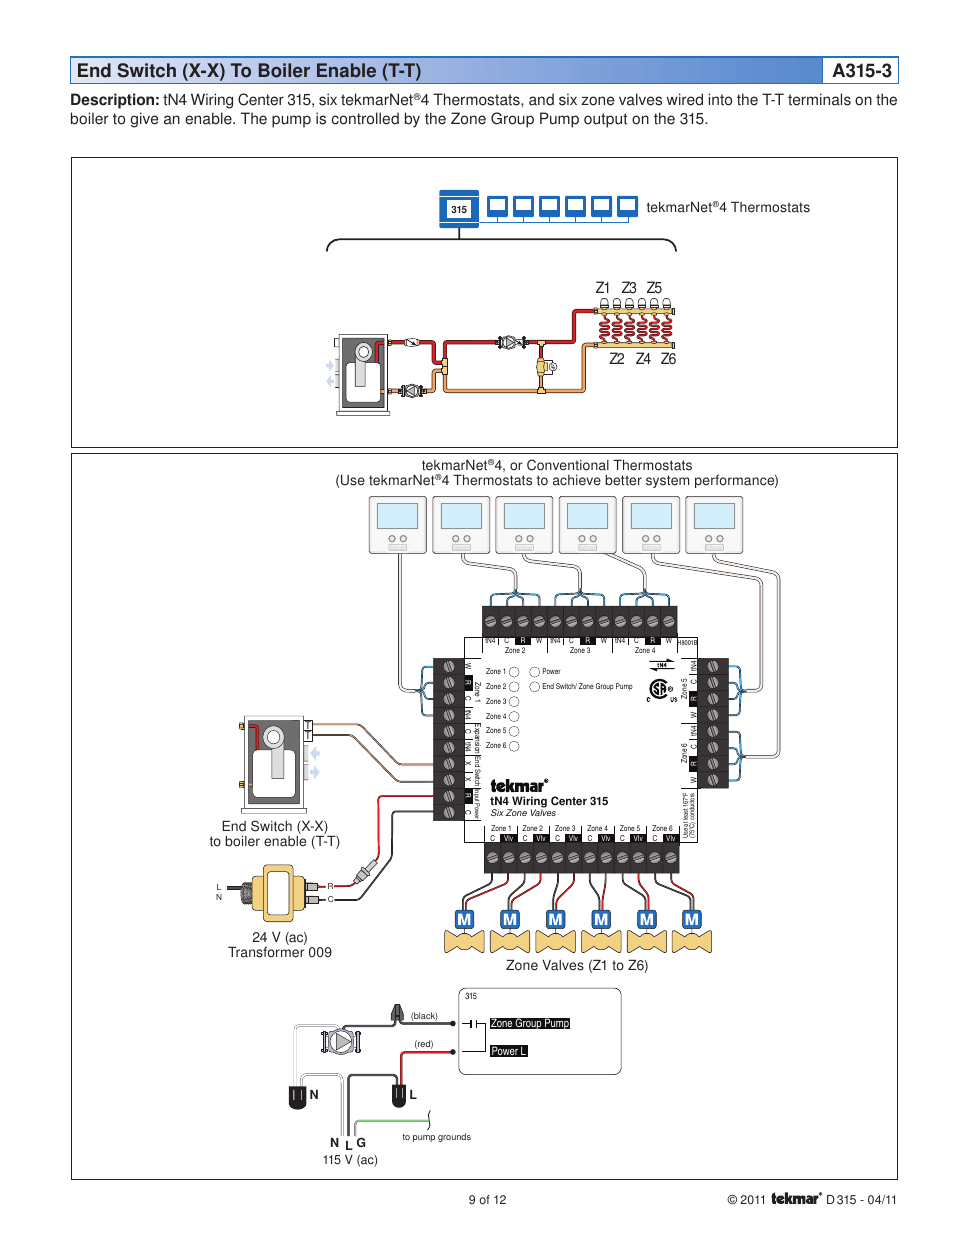 medium resolution of end switch x x to boiler enable t t a315 3 description tn4 wiring center 315 six tekmarnet z1 z2 z3 z4 tekmar 315 tn4 wiring center installation